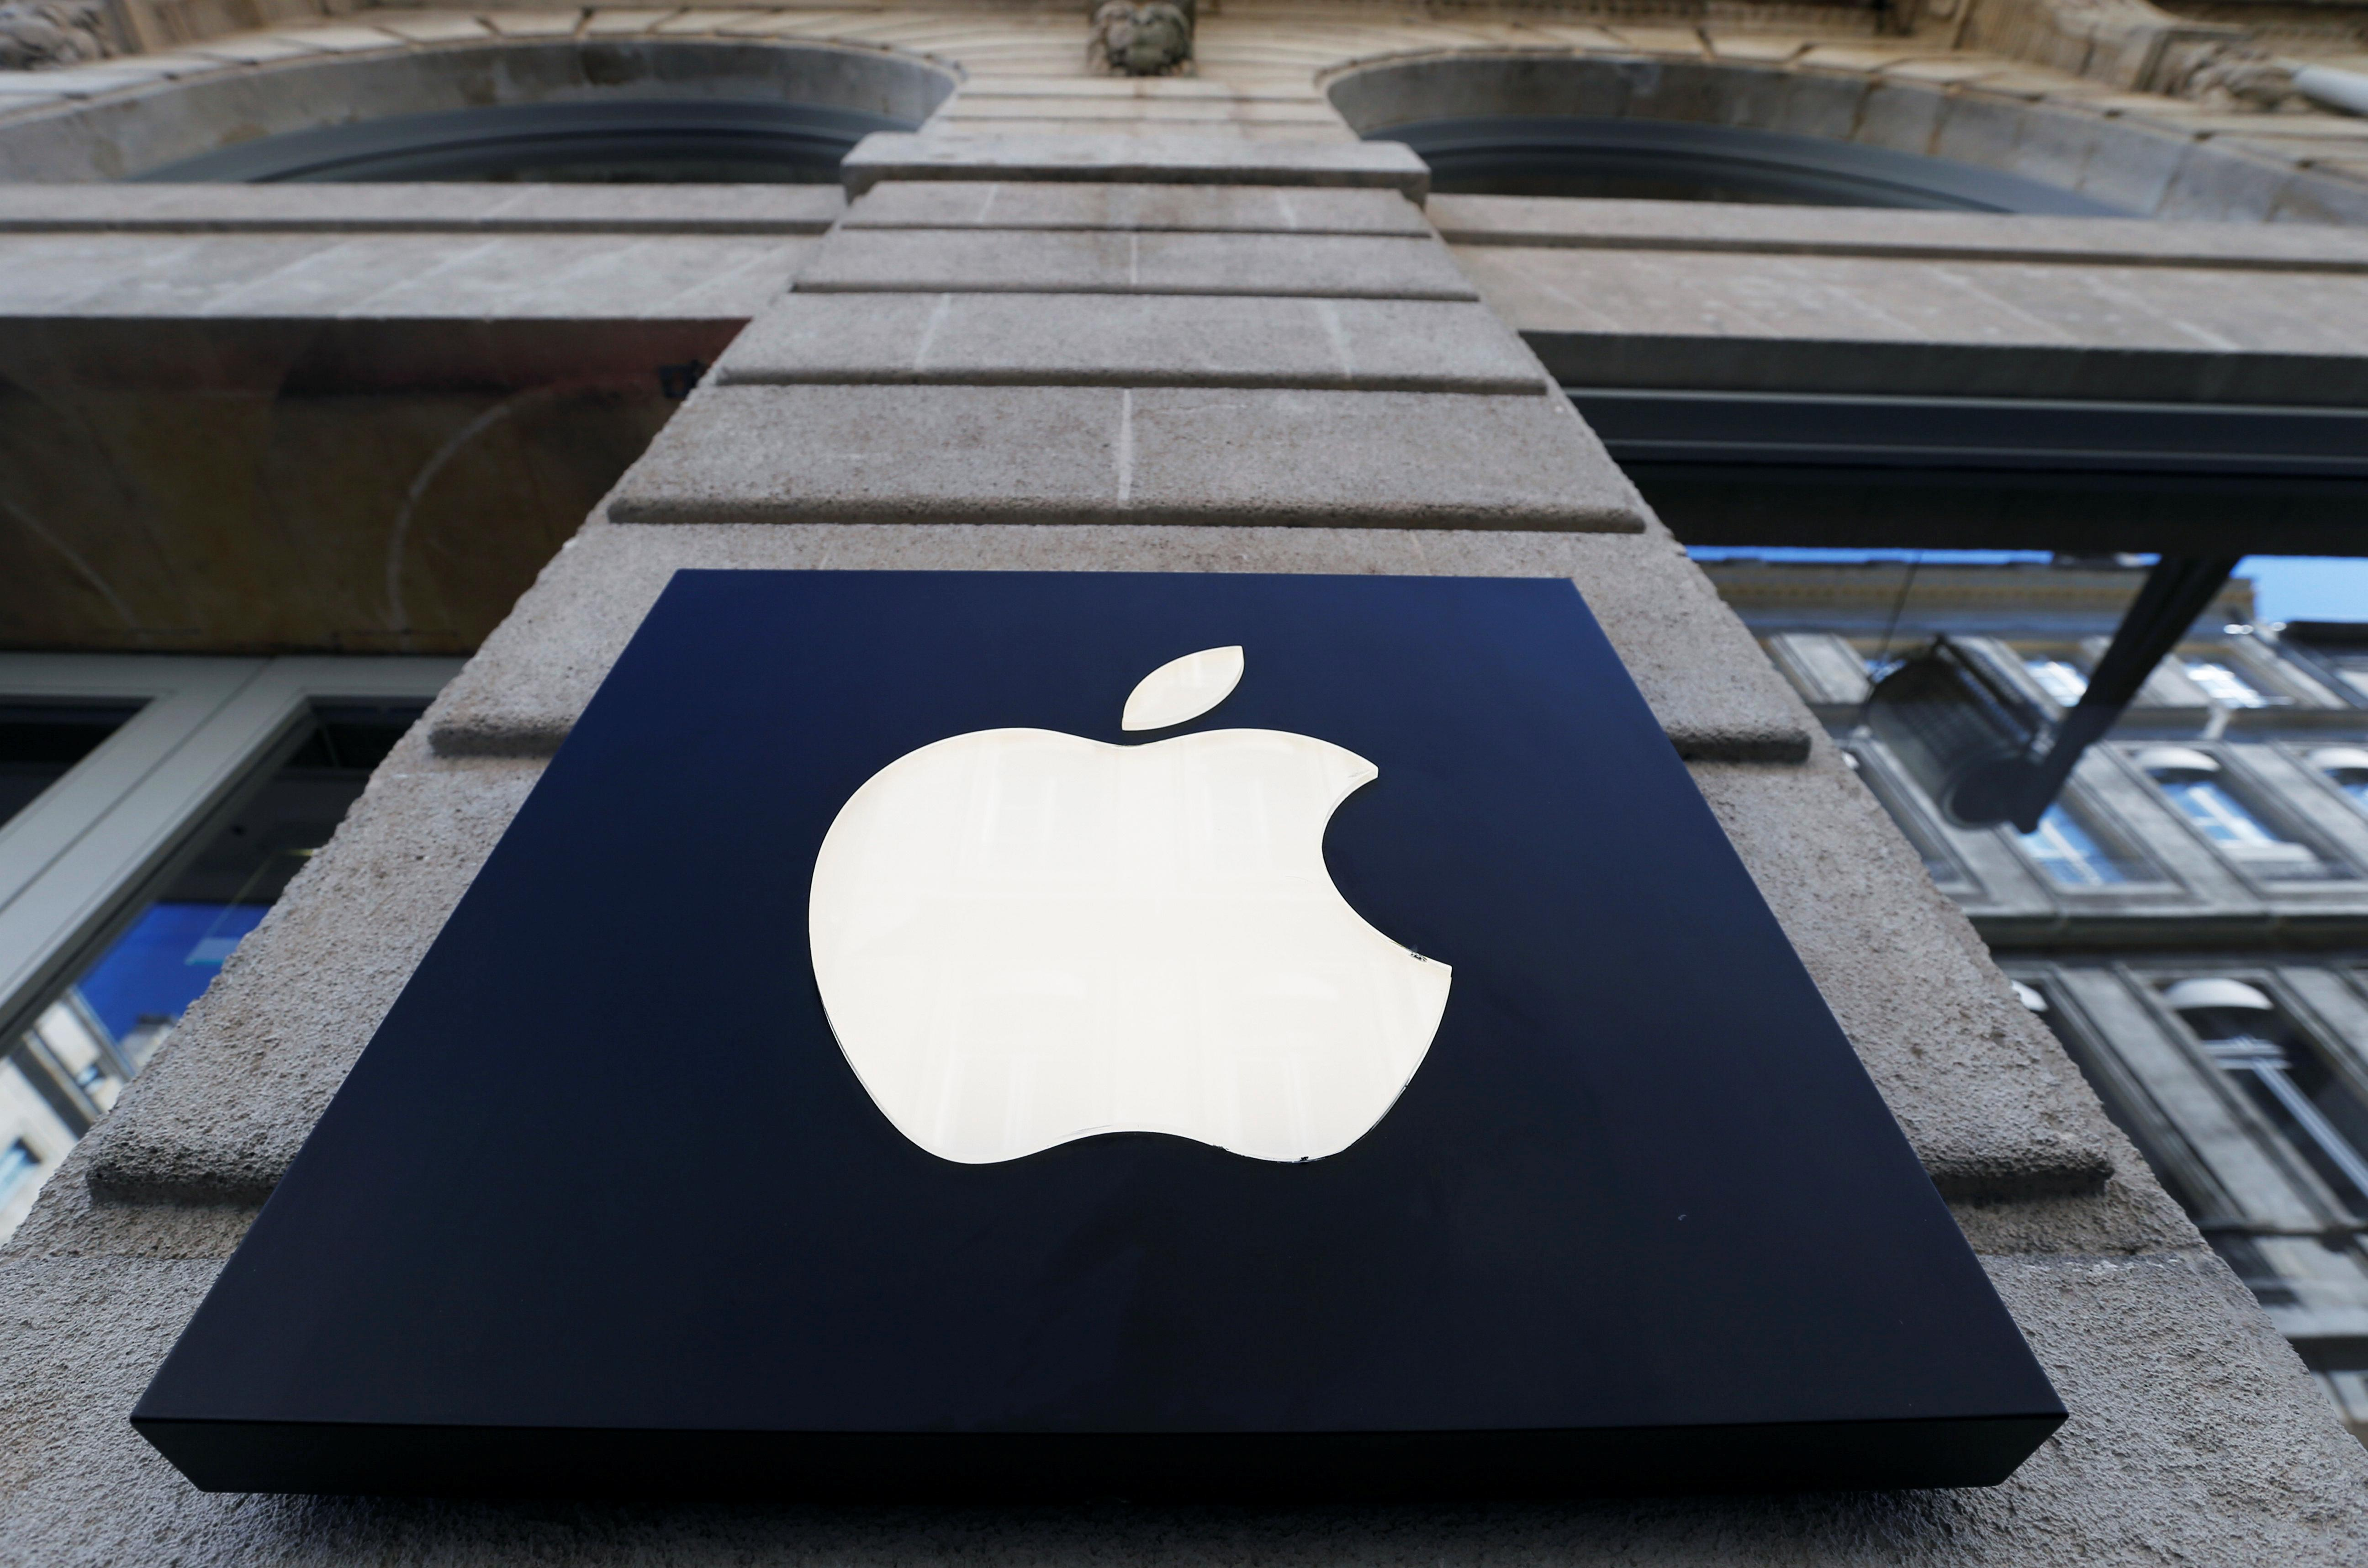 Apple faces investigation for suspected unfair competition in Russia